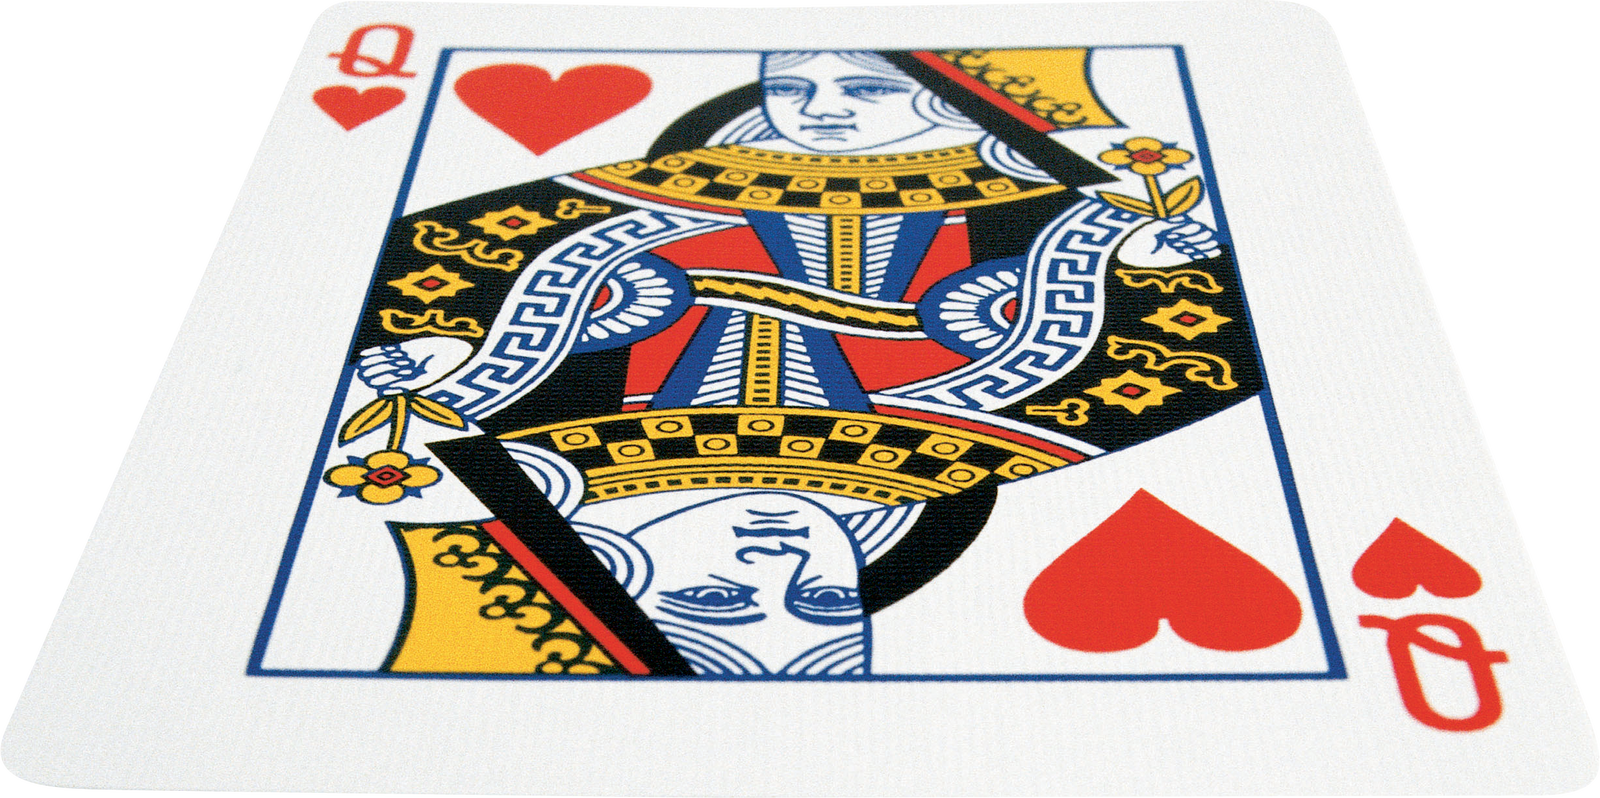 Queen playing cards png. Card game of hearts